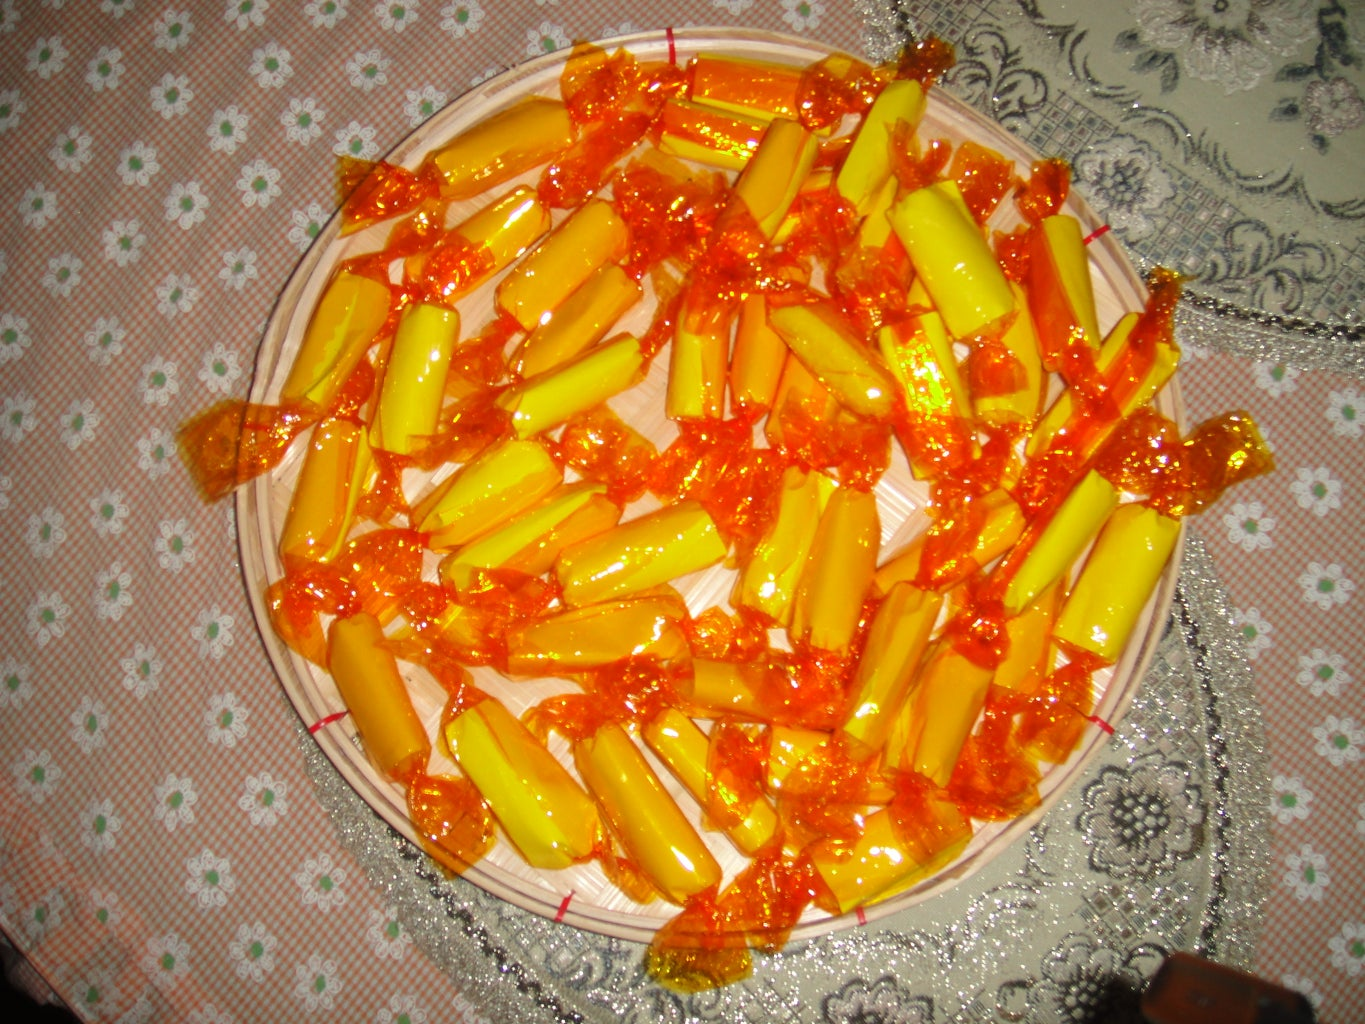 Pack the Coated Pastillas